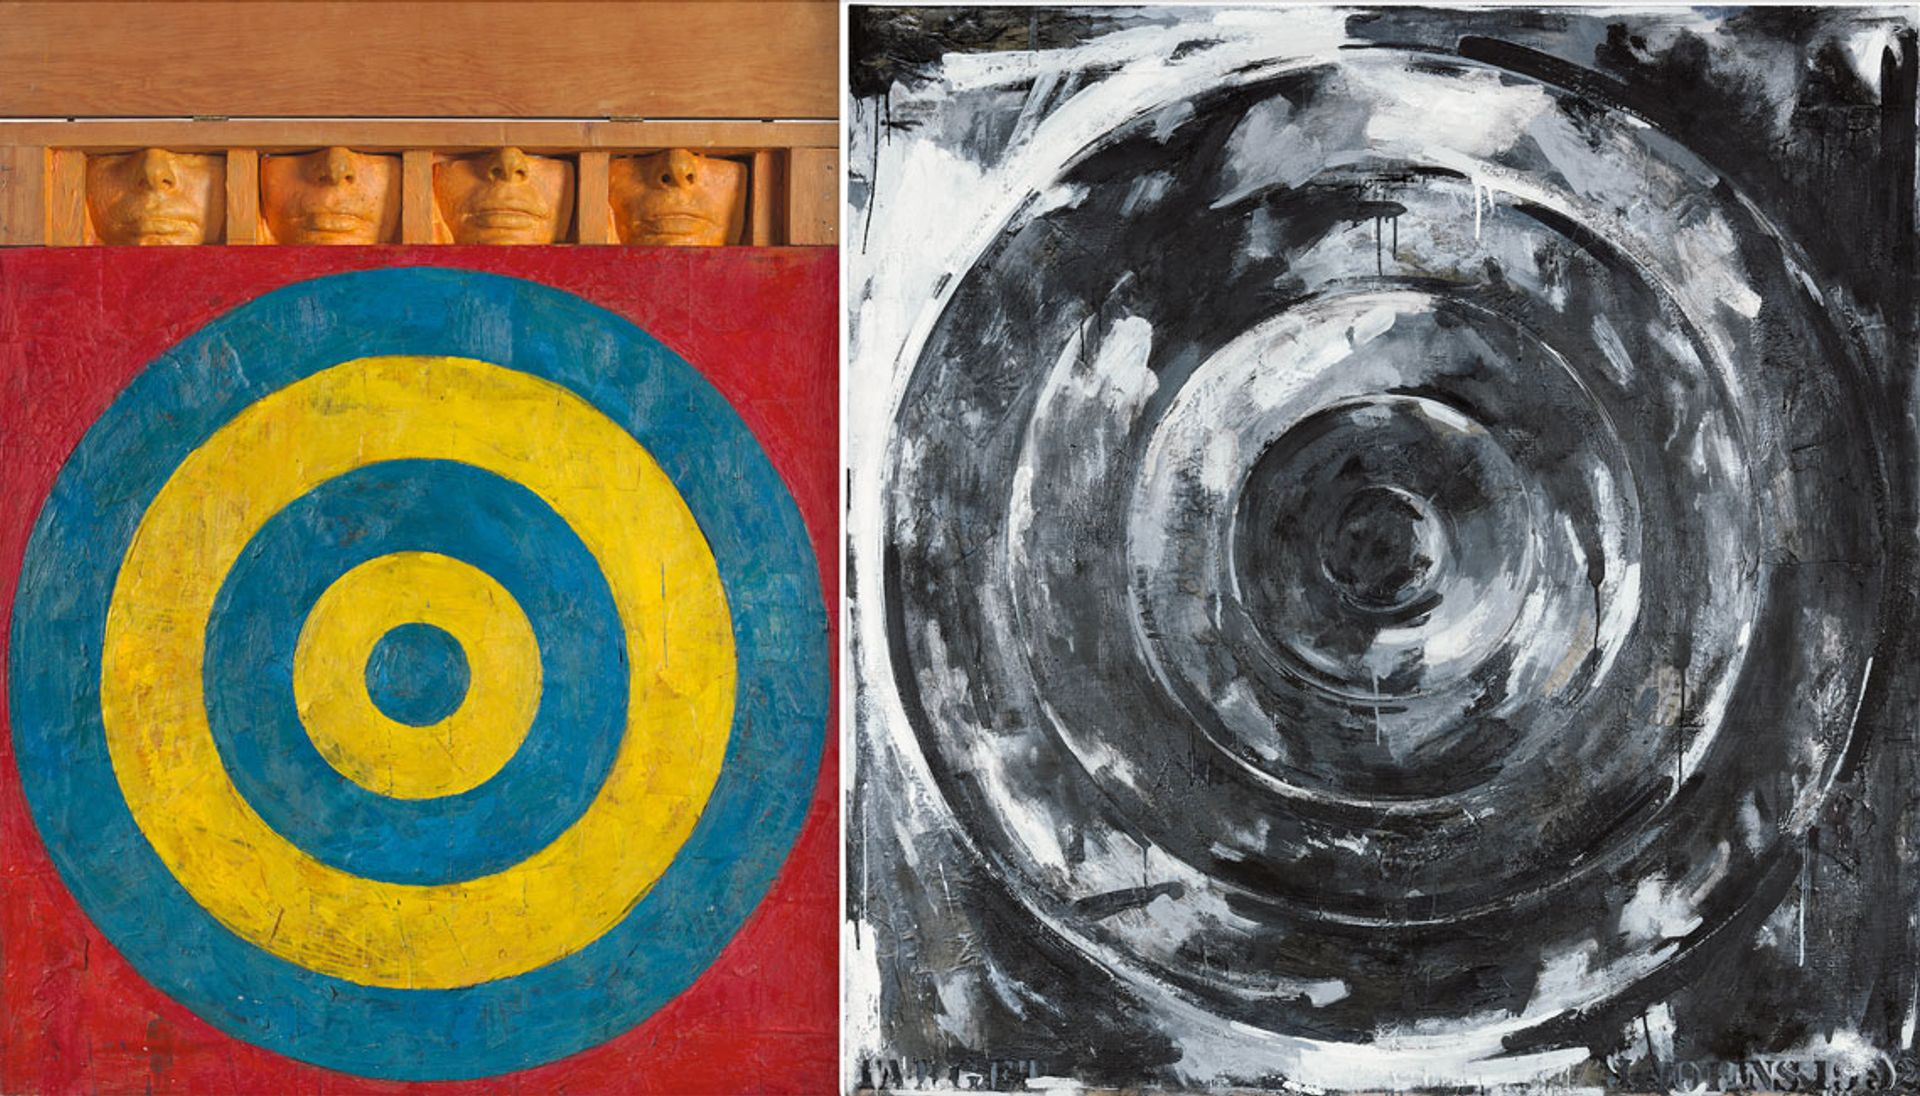 Jasper Johns's Target with Four Faces (1955) will be on show at the Whitney Museum while Target (1992) will be on display at the Philadelphia Museum of Art © 2021 Jasper Johns/VAGA at ARS, NY